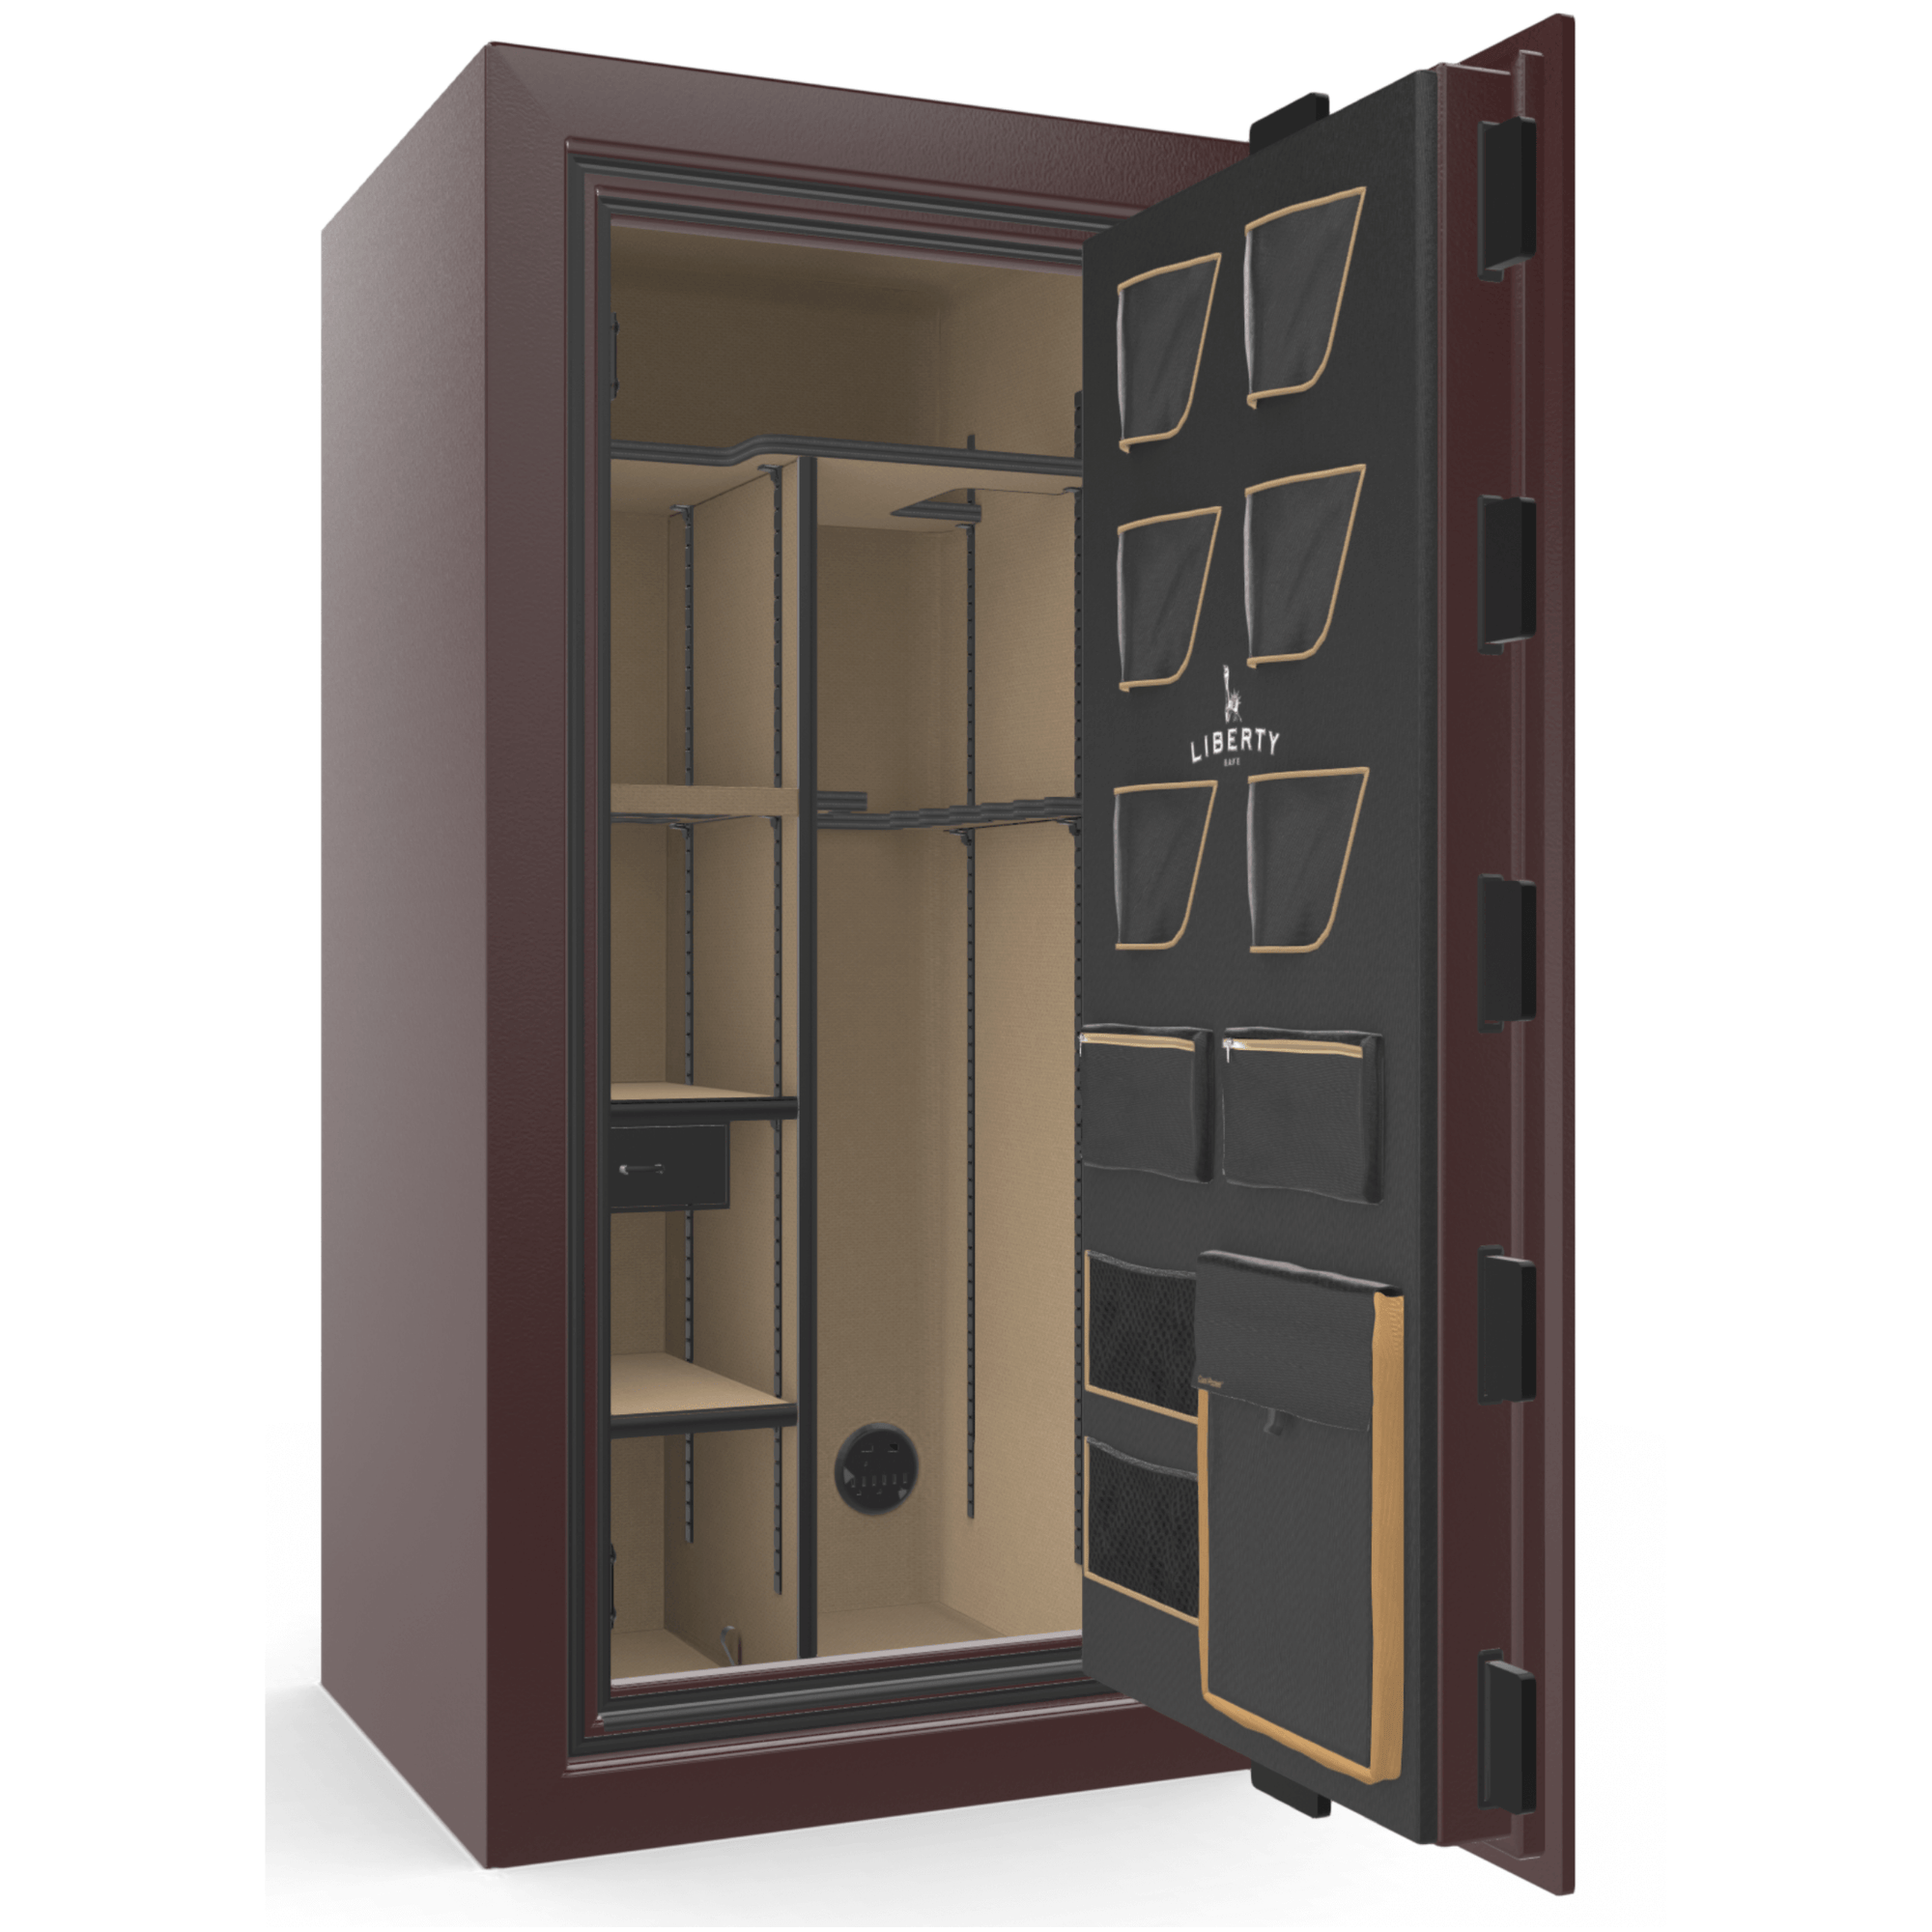 "Classic Plus | 25 | Level 7 Security | 110 Minute Fire Protection | Burgundy | Brass Electronic Lock | 60.5""(H) x 30""(W) x 29""(D)"